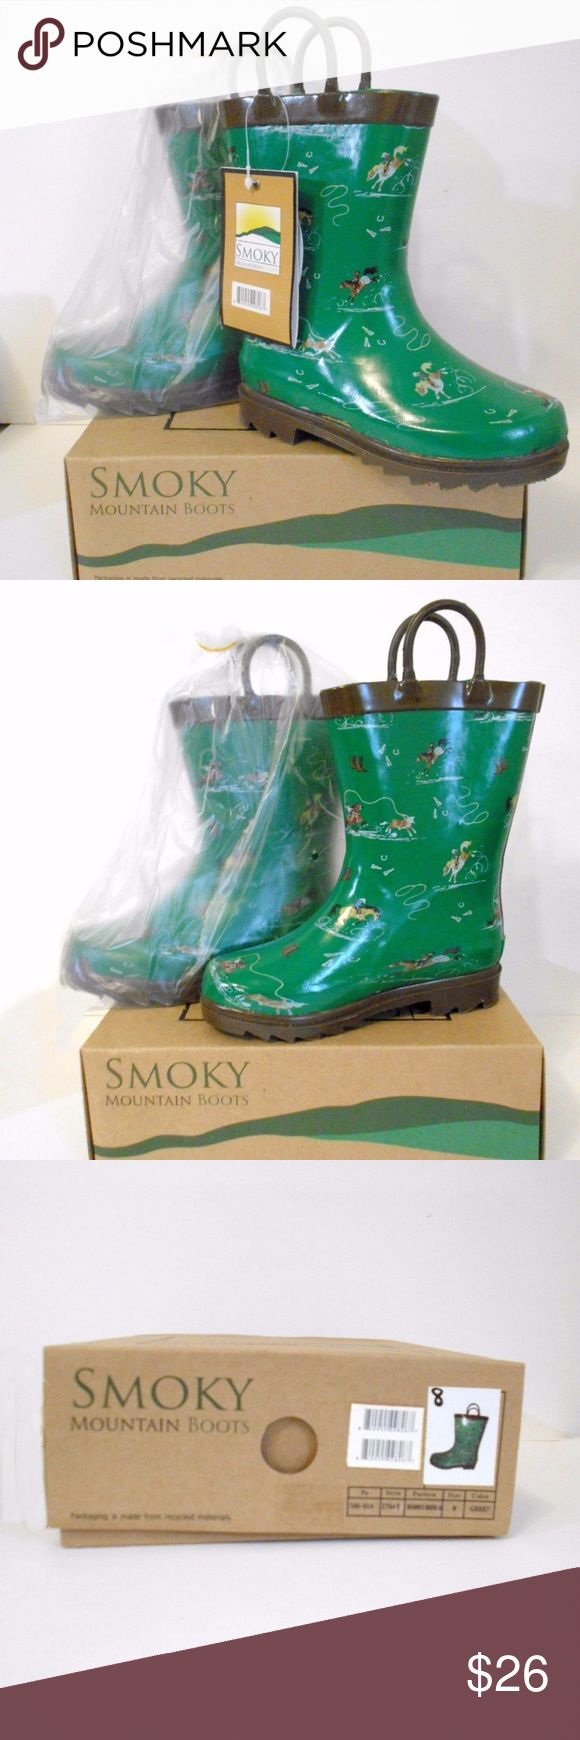 """NEW w/BOX Childs SMOKY MOUNTAIN Green Rubber Boots Smoky Mountain Rubber Boots for Children-Mud Puddles-pattern of Horses and Rodeo Rider.  Sturdy, waterproof, new in box. """"Rodeo Riders"""". Steel shank in boot for extra stability, and extra traction on the soles. Manmade """"Rubber"""" material. not natural. Light padding inside, artist was Lisa Blakeslee. This boot is part of a special collaboration between Smoky Mountain Boots and AWST International.  Photos of Size """"8"""", but you will be sent the…"""